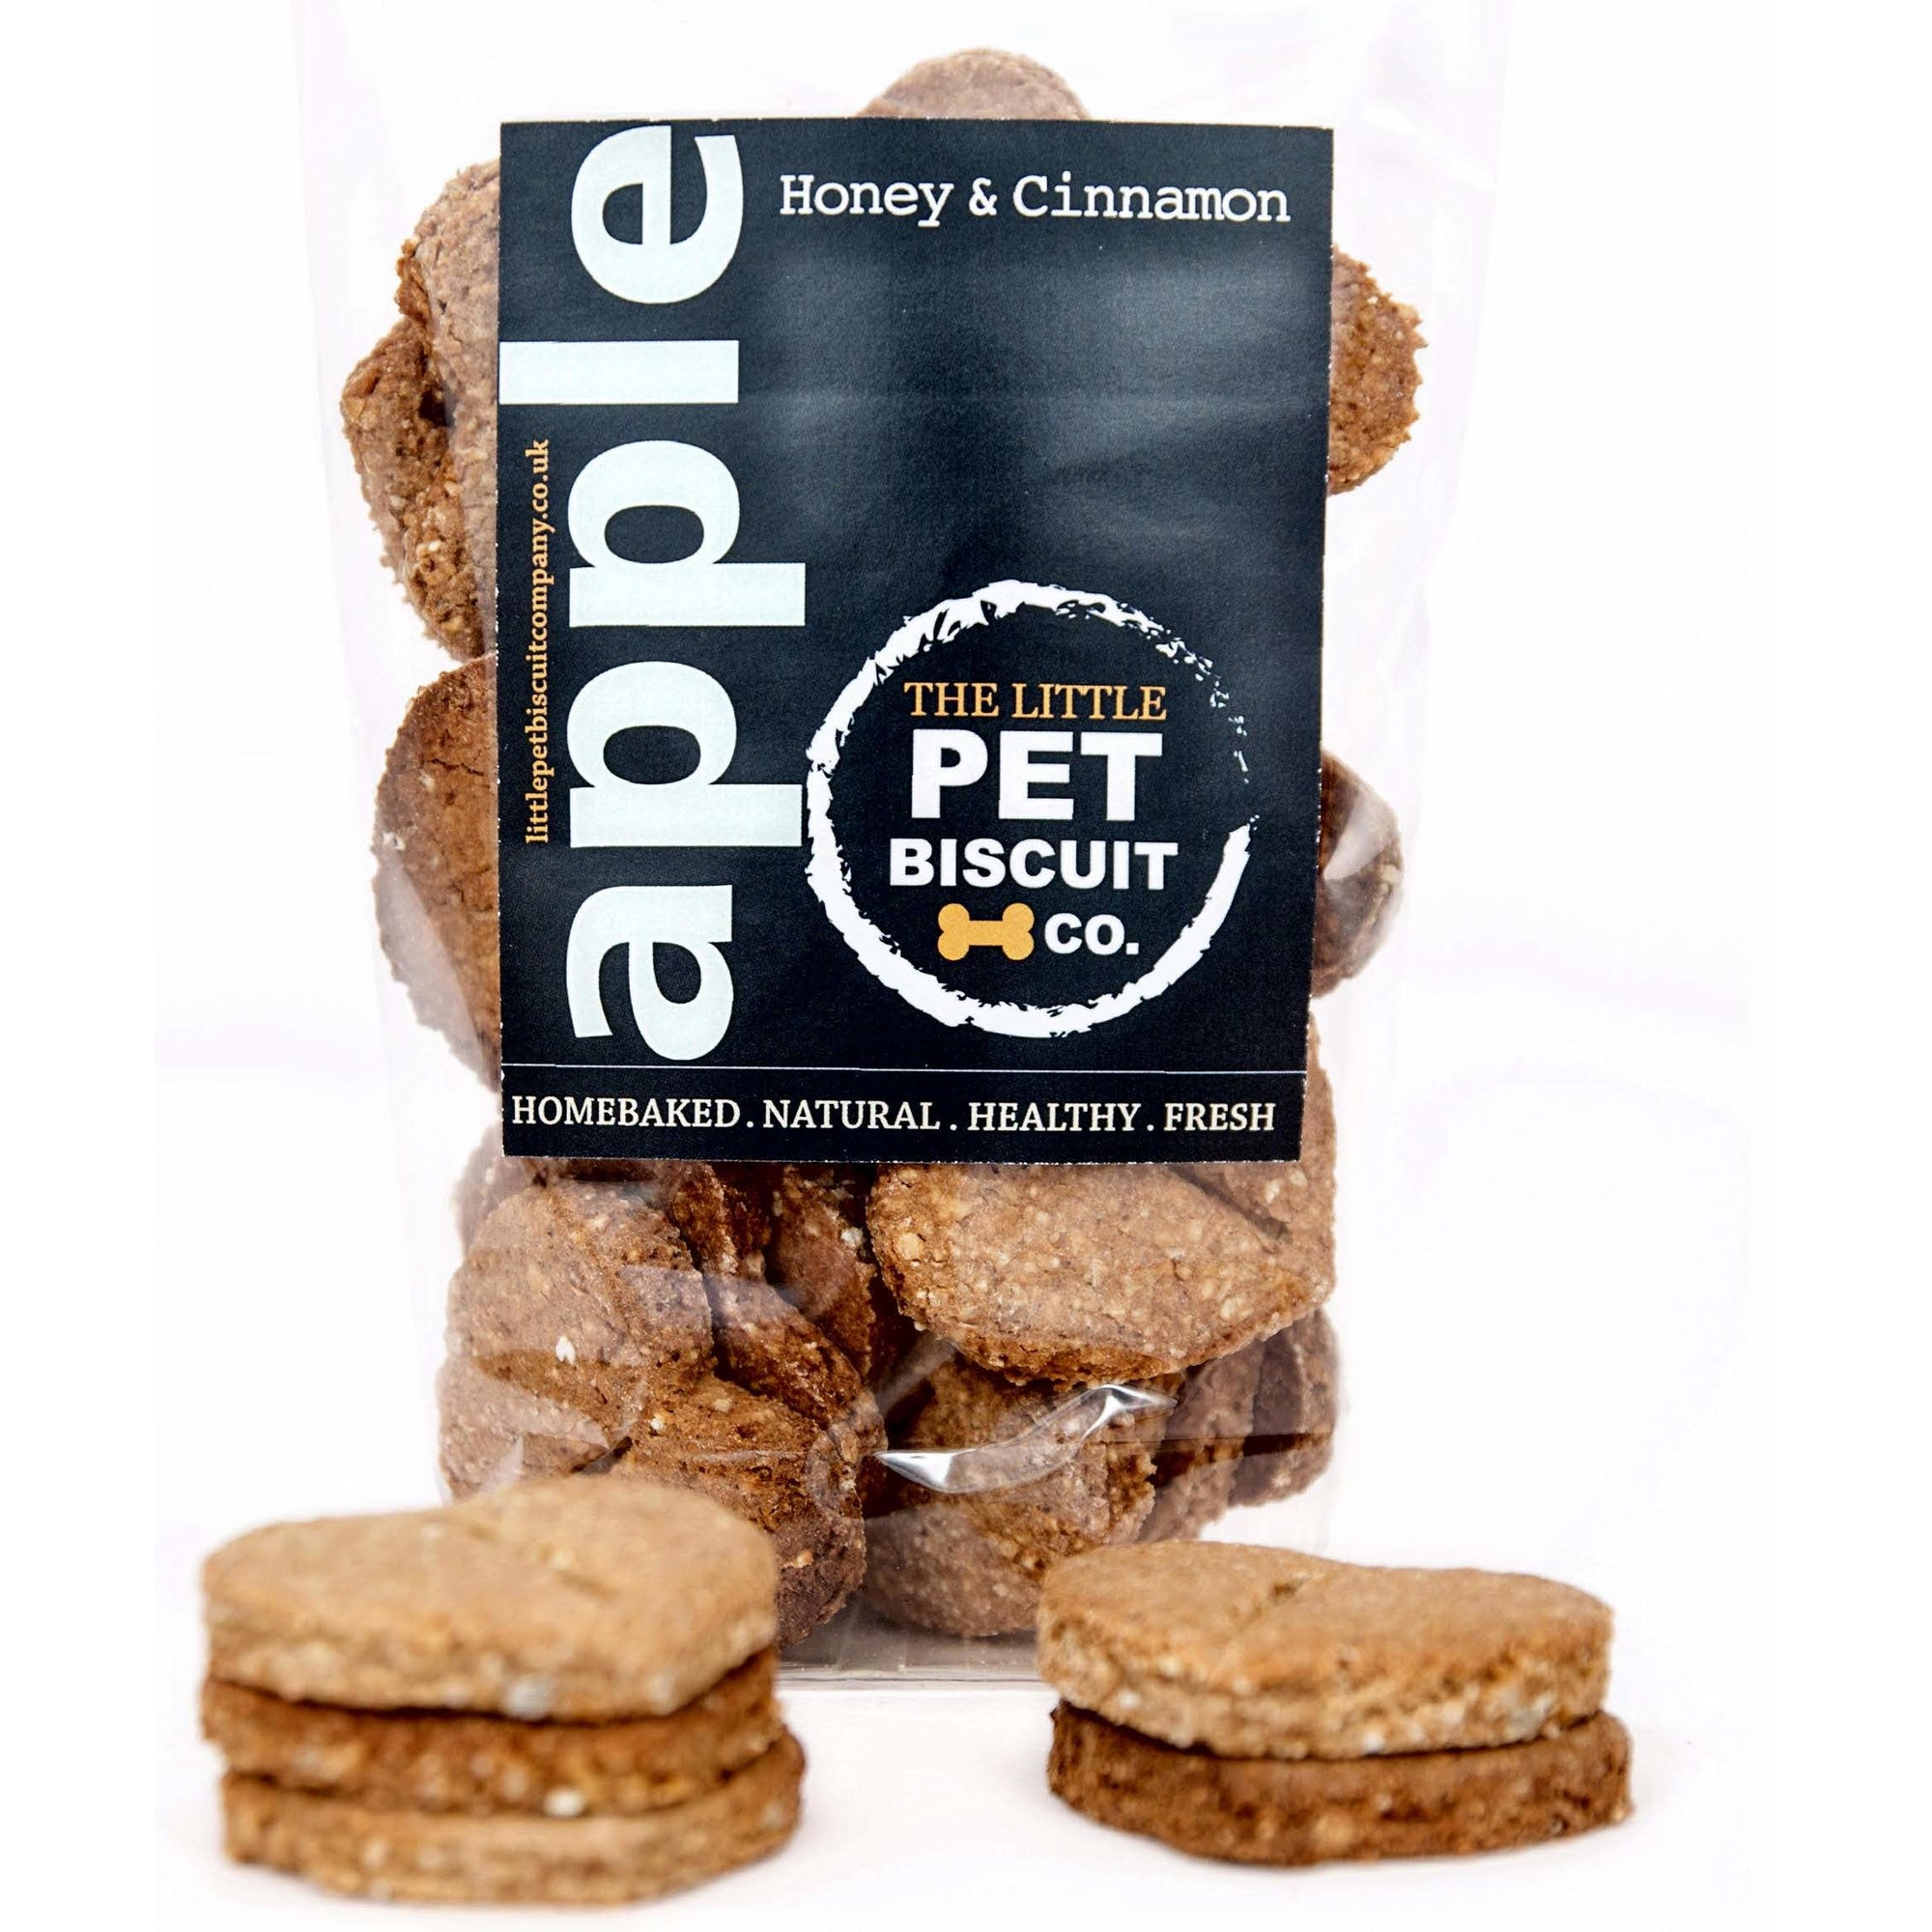 Apple Honey & Cinnamon natural dog biscuits